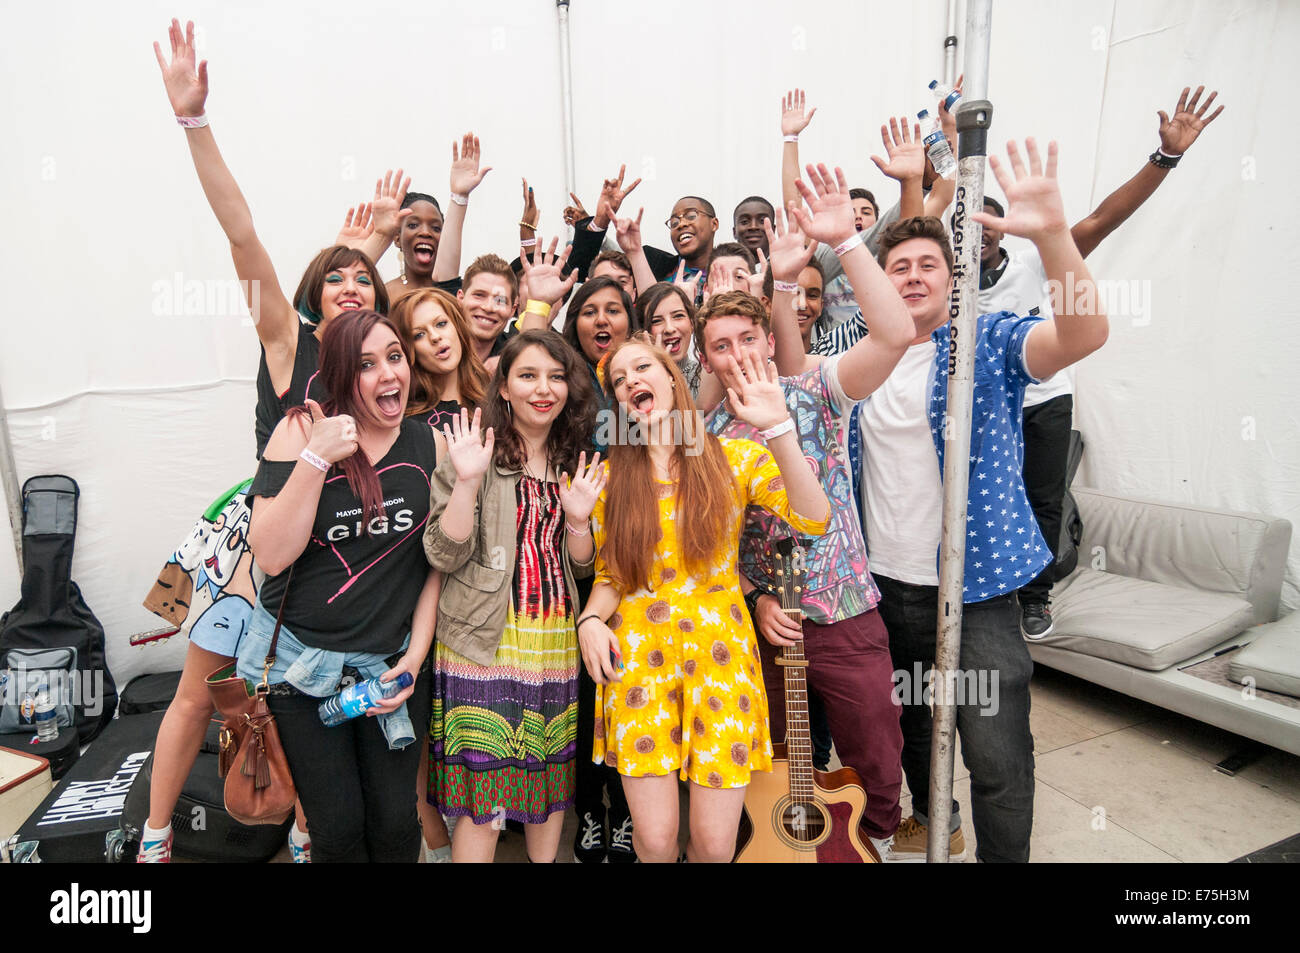 London, UK. 7th September, 2014.  Supported by the Mayor of London, The Grand Final of Gigs Big Busk, the UK's biggest street music competition, took place at Westfield, Stratford in front of huge audiences.  Pictured: backstage with the finalists. Credit:  Stephen Chung/Alamy Live News Stock Photo